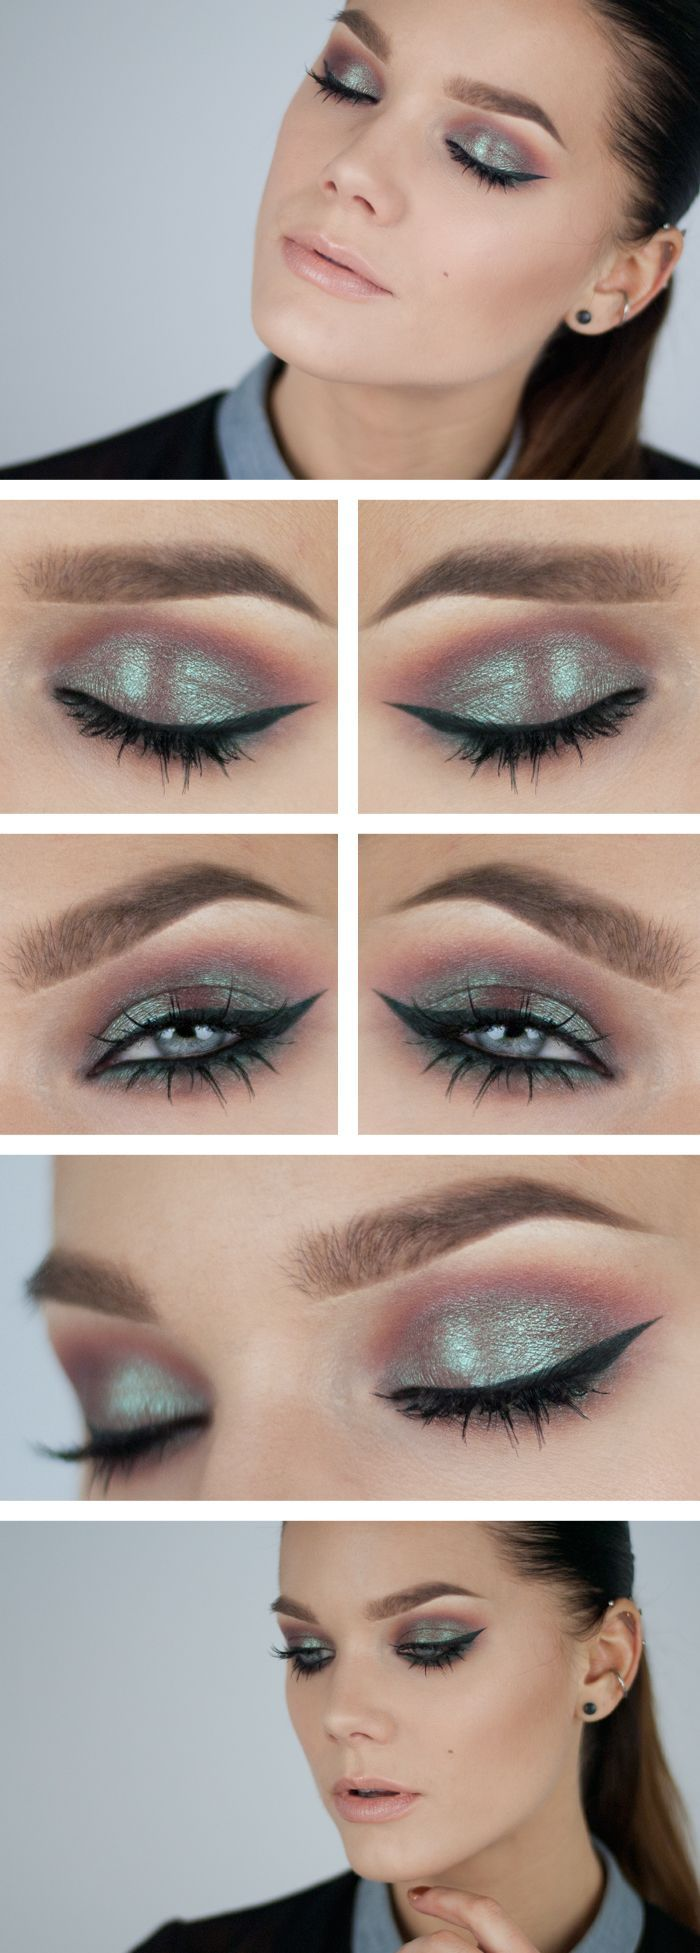 1151 best Make up images on Pinterest | Make up, Makeup and Beauty ...